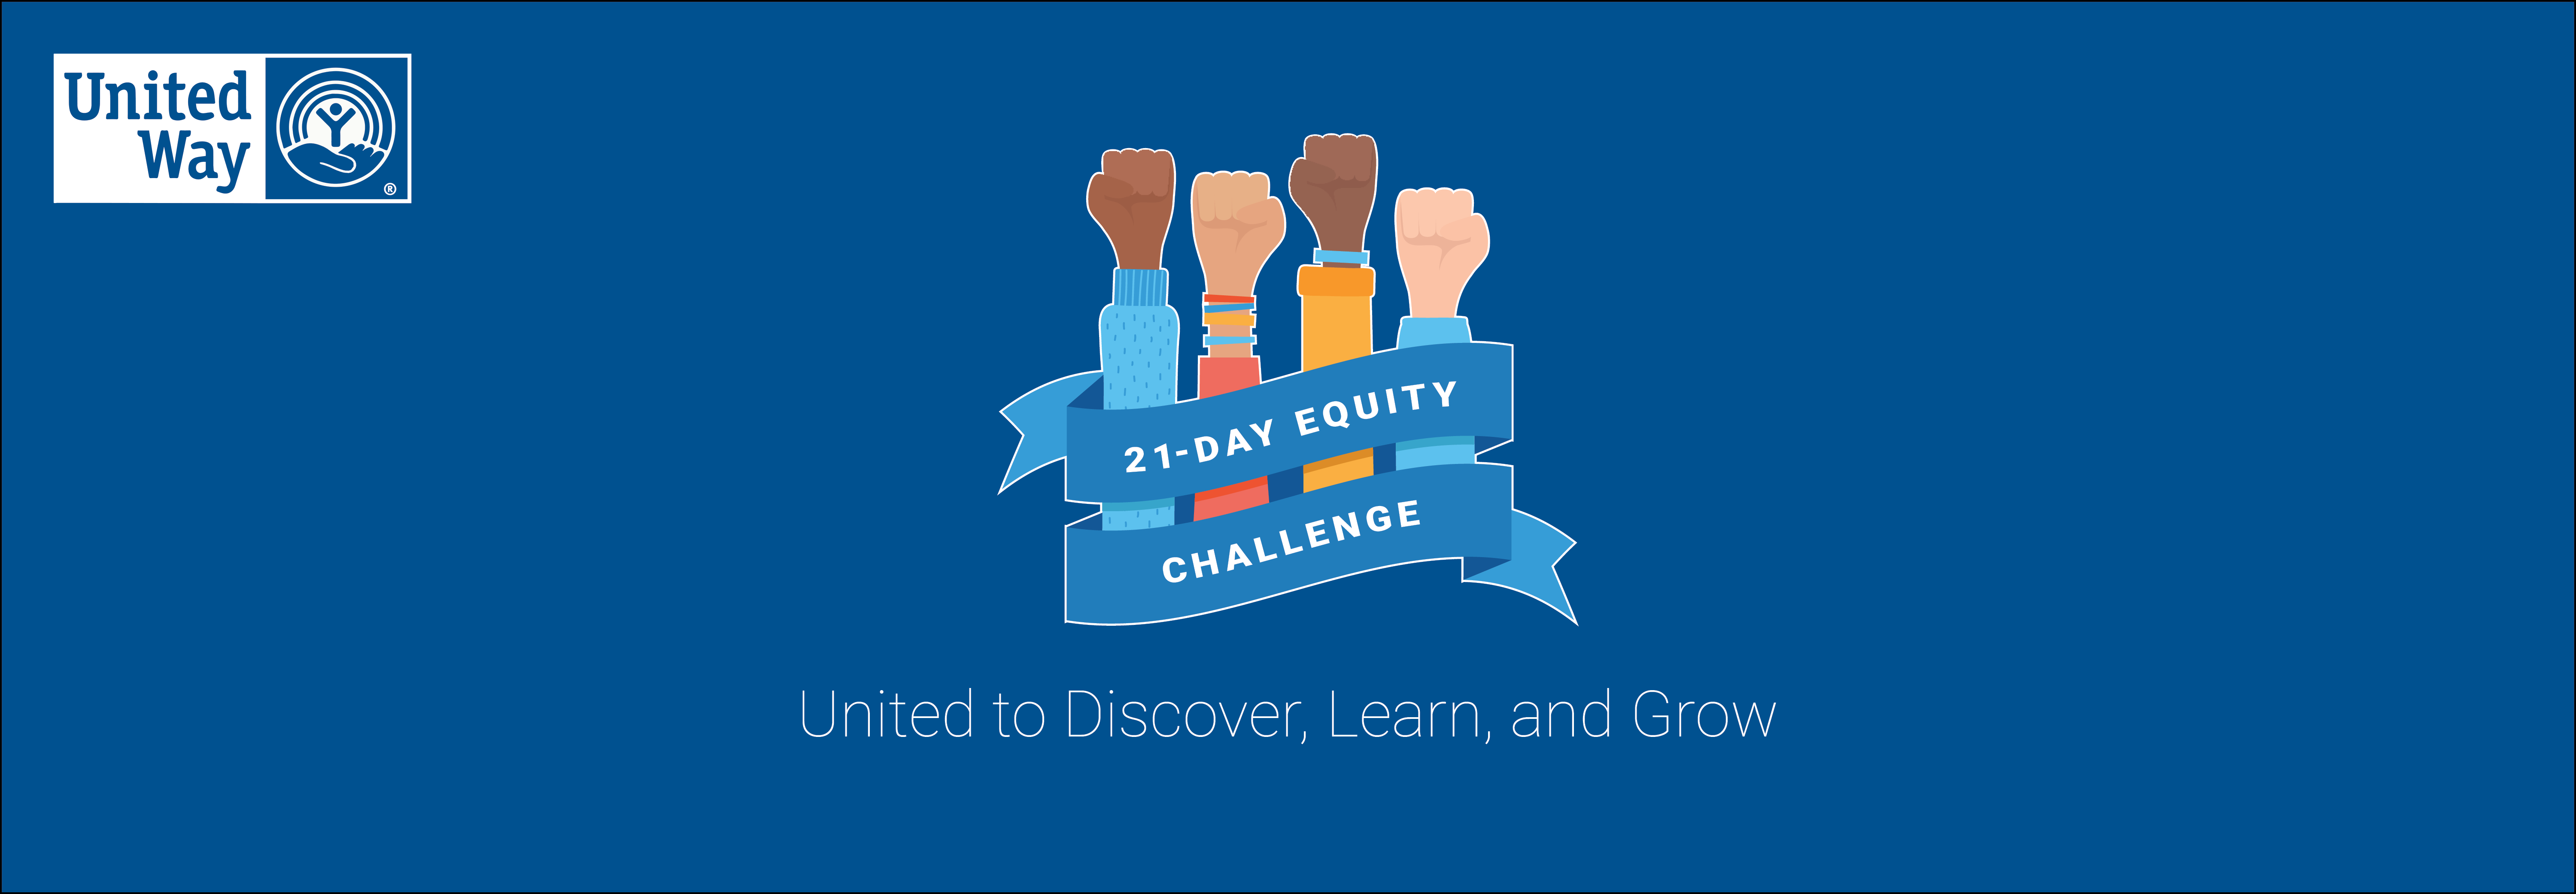 Equity Challenge - webpage banner